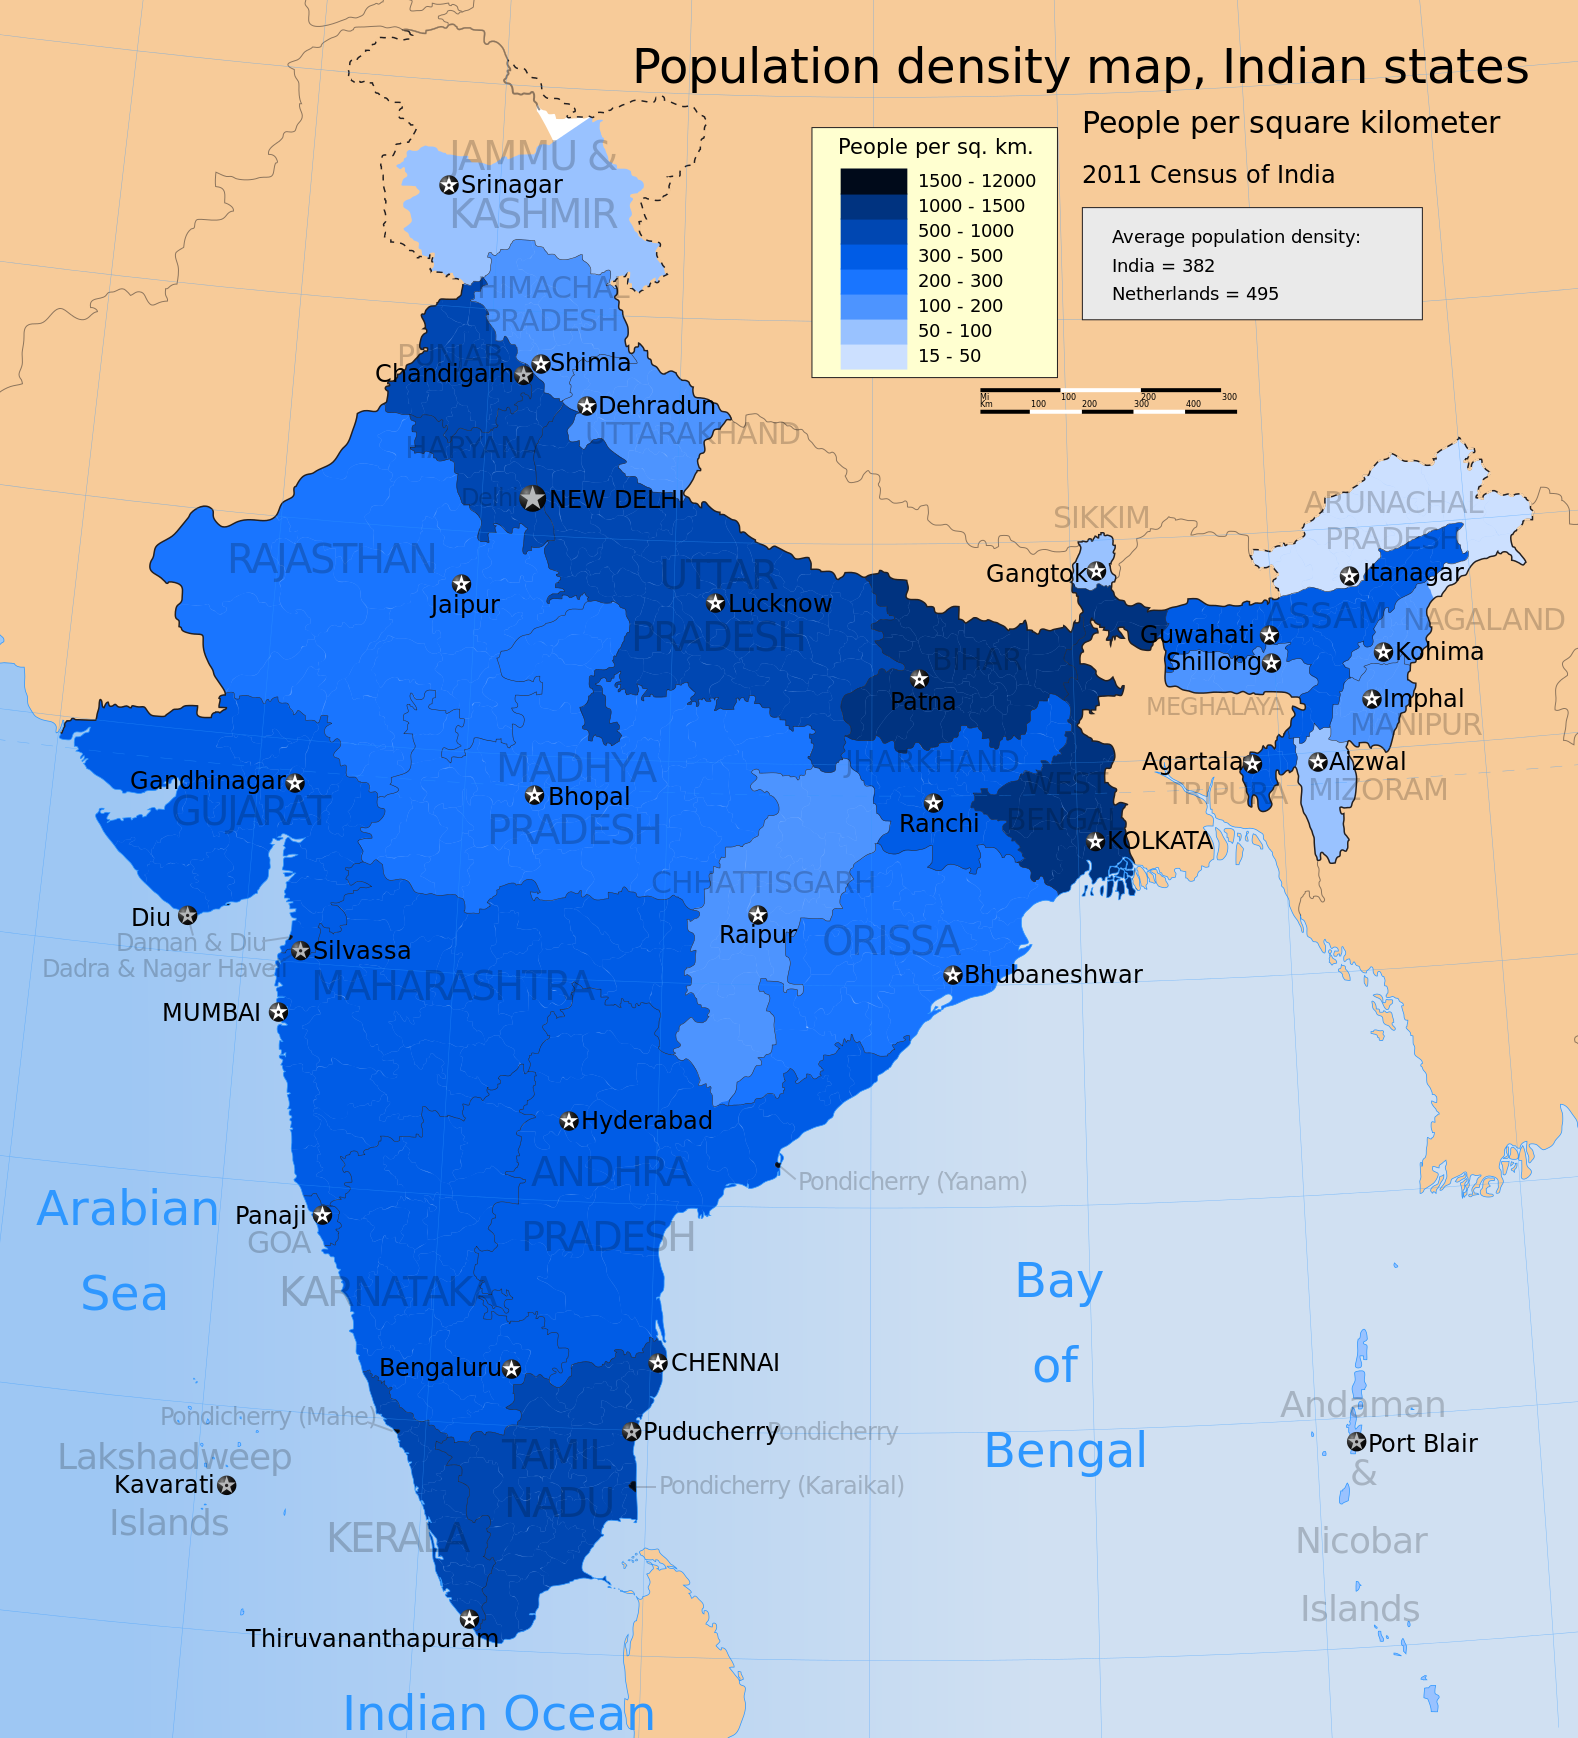 recent choropleth map of india India Population Density Map 2011 Literacy Rate India Map recent choropleth map of india